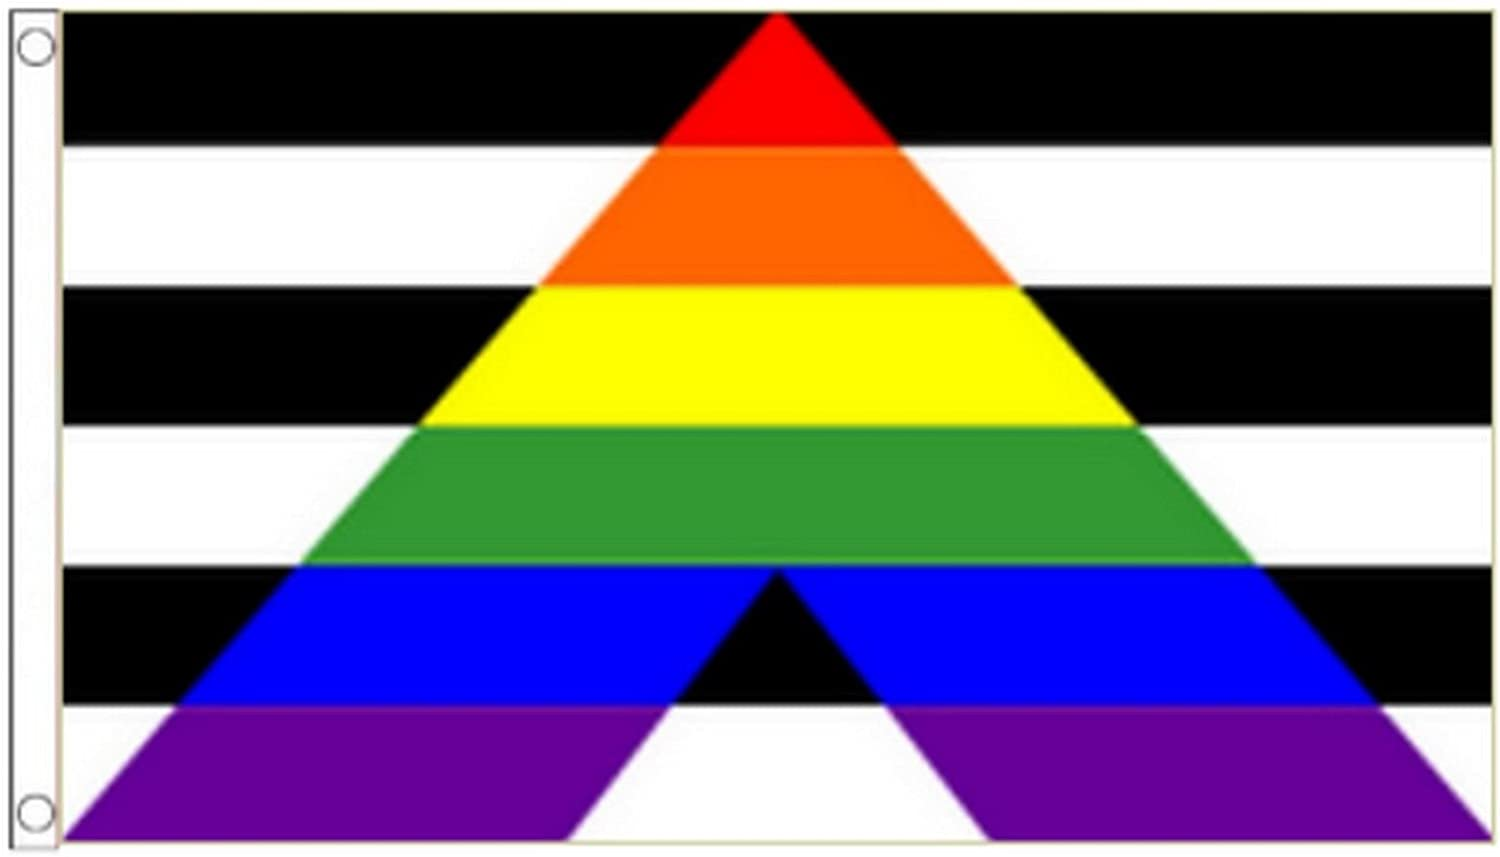 5/' x 3/' Straight Ally Flag Support Gender Equality Allies Rainbow Gay Pride LGBT